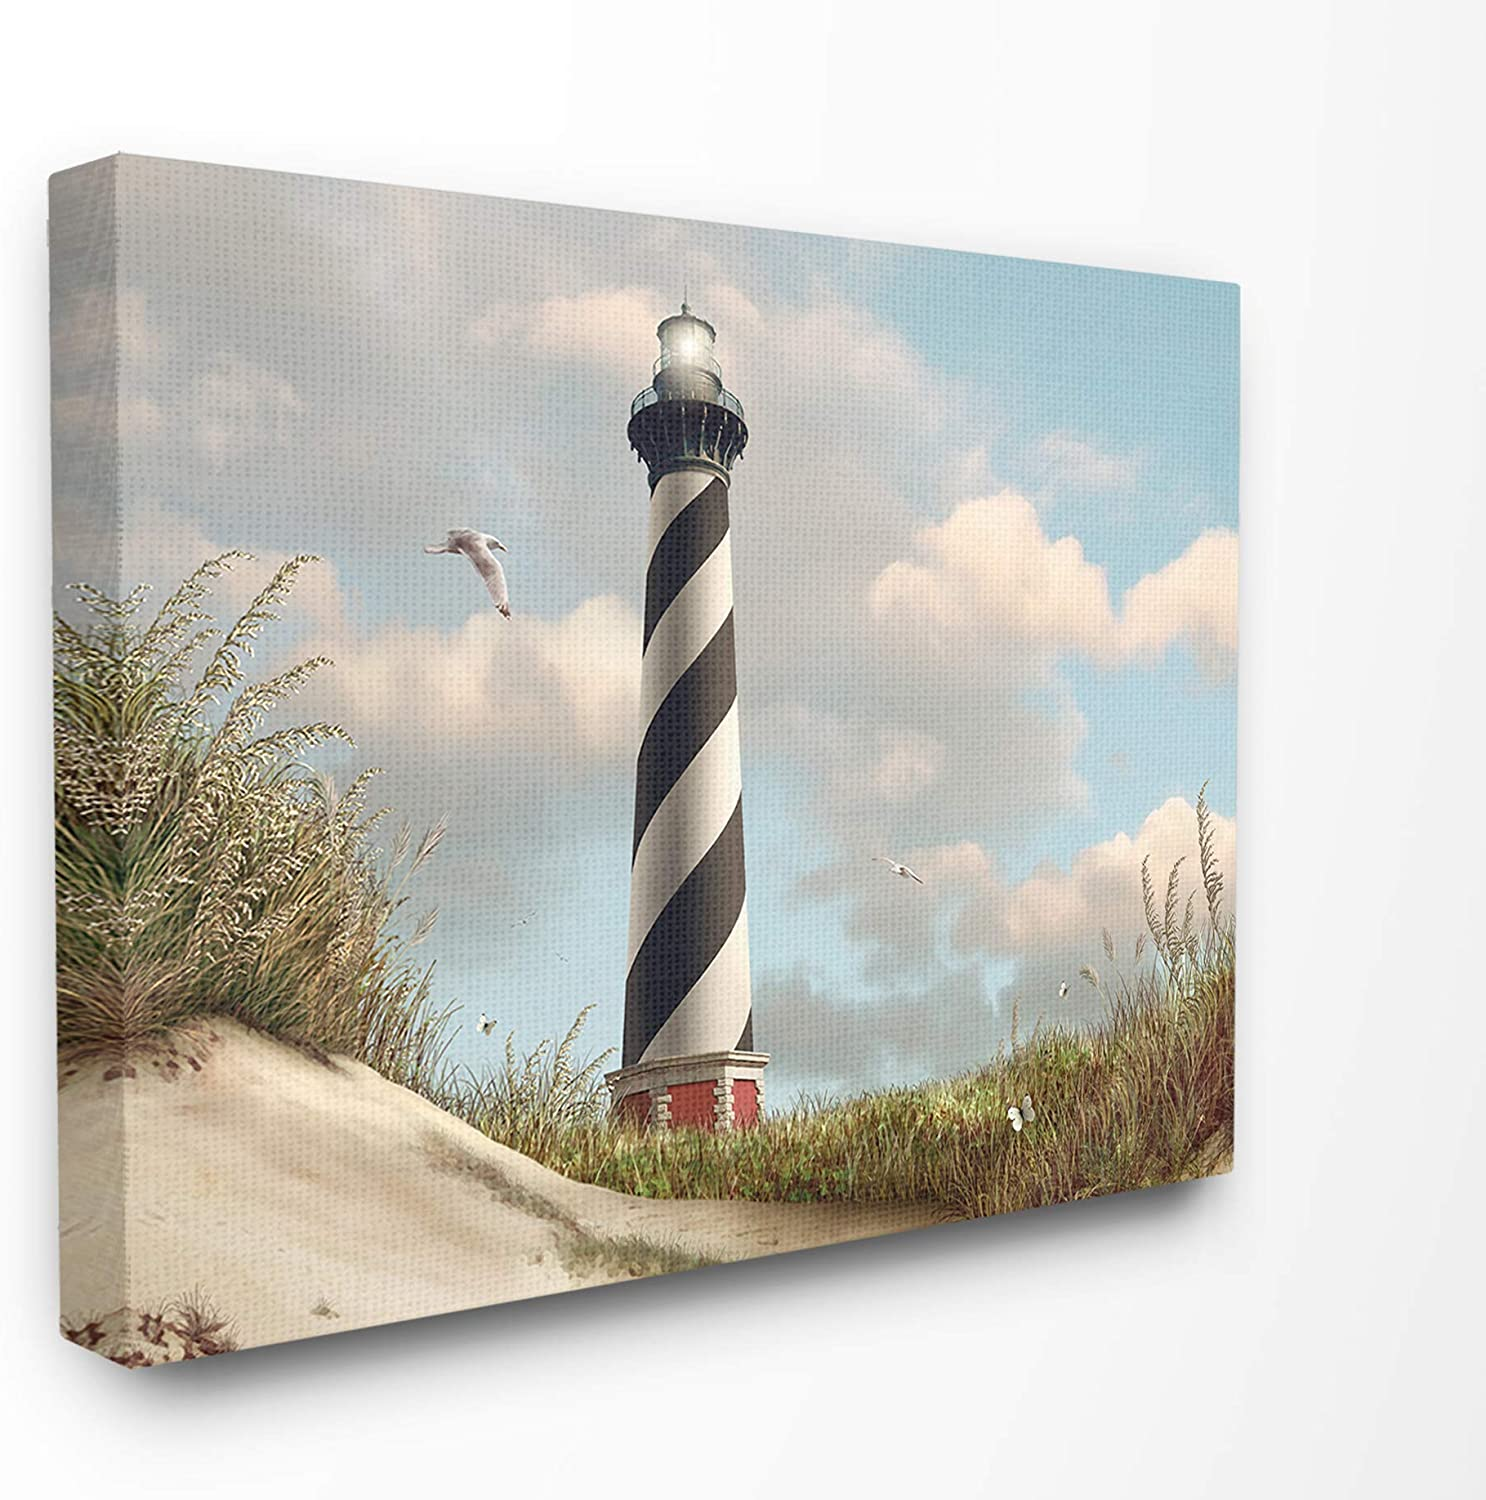 The Stupell Home Decor Cape Hatteras Black and White Swirl Shore Side Lighthouse with Sand Dune Stretched Canvas Wall Art, 11x14, Multi-color